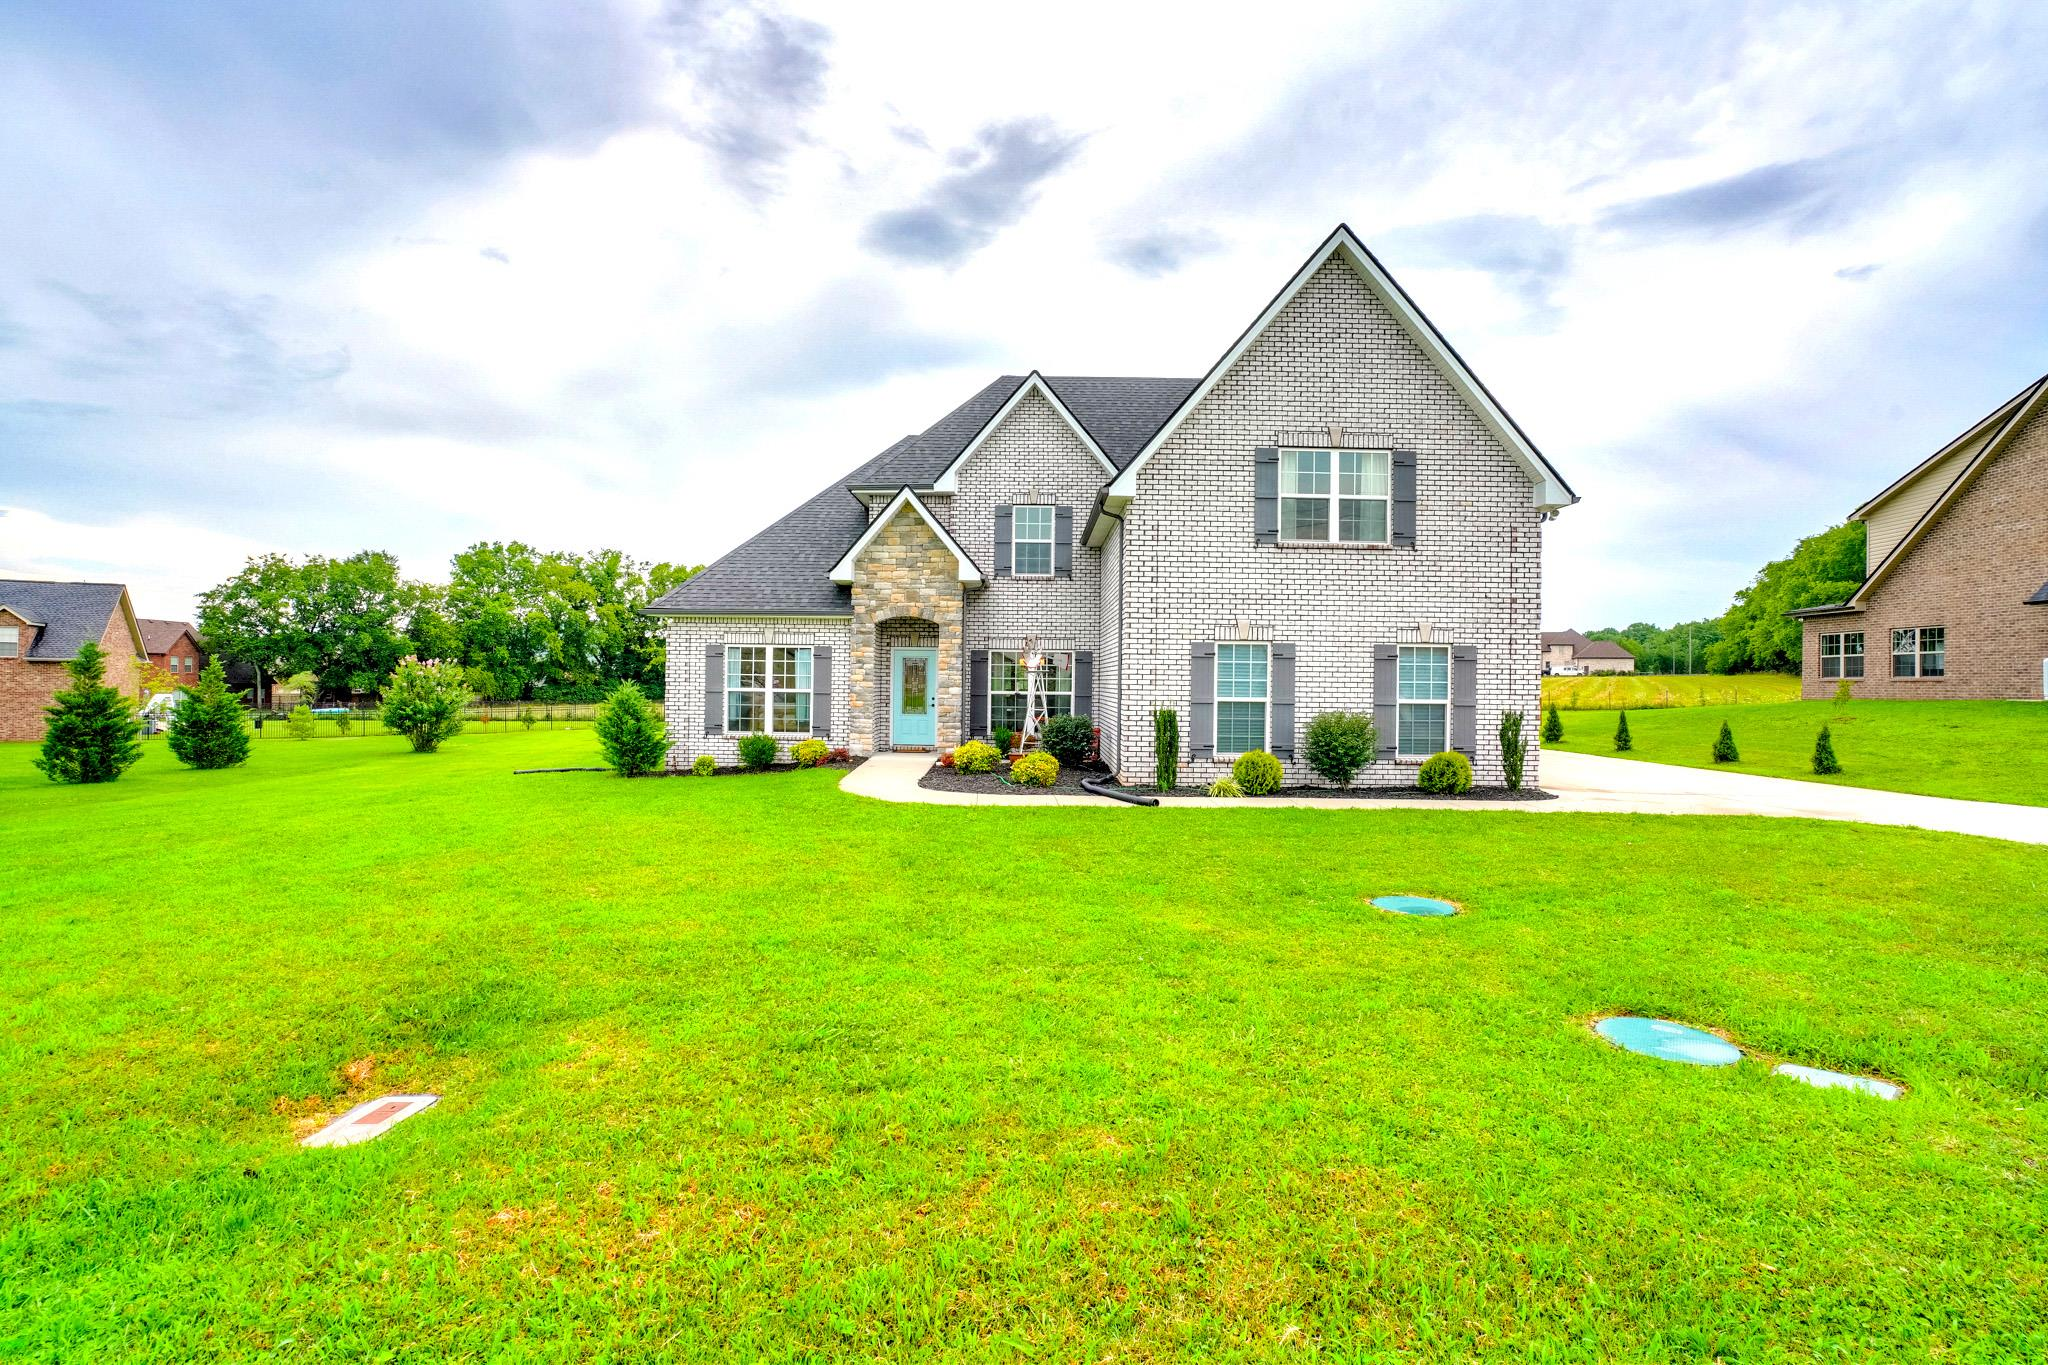 134 Saturday Dr, Lascassas, TN 37085 - Lascassas, TN real estate listing